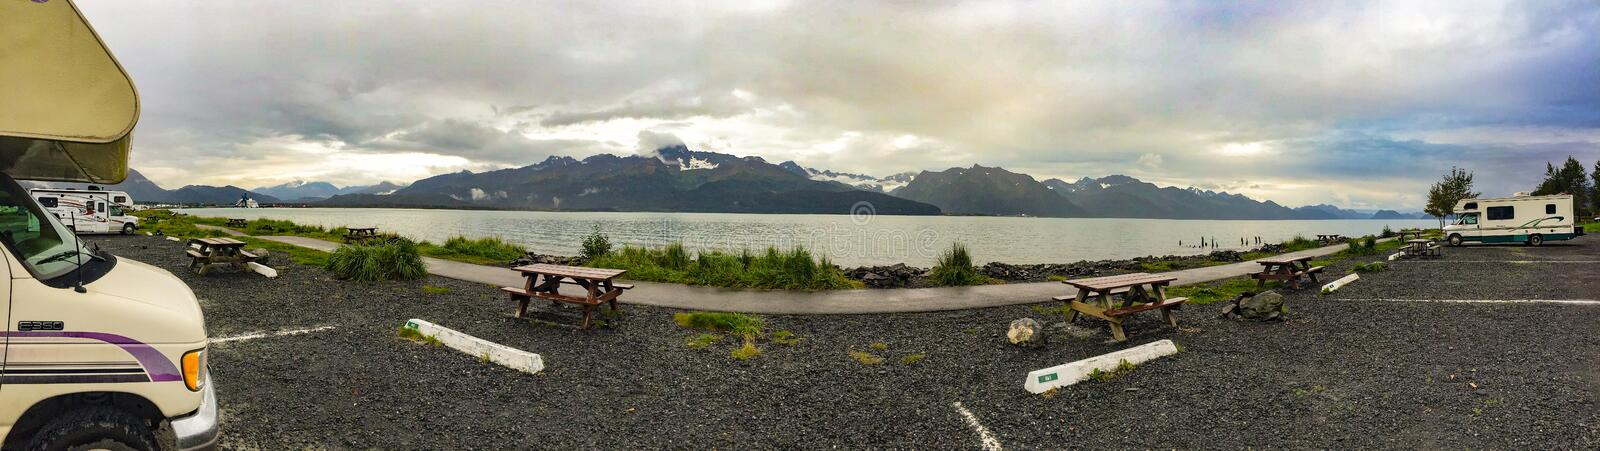 Seward Alaska - Kigluaik Mountains. Seward, Alaska, USA - Sept. 8, 2016: Spectacular RV camping spot in Seward, Alaska overlooking Resurrection Bay and the royalty free stock photo